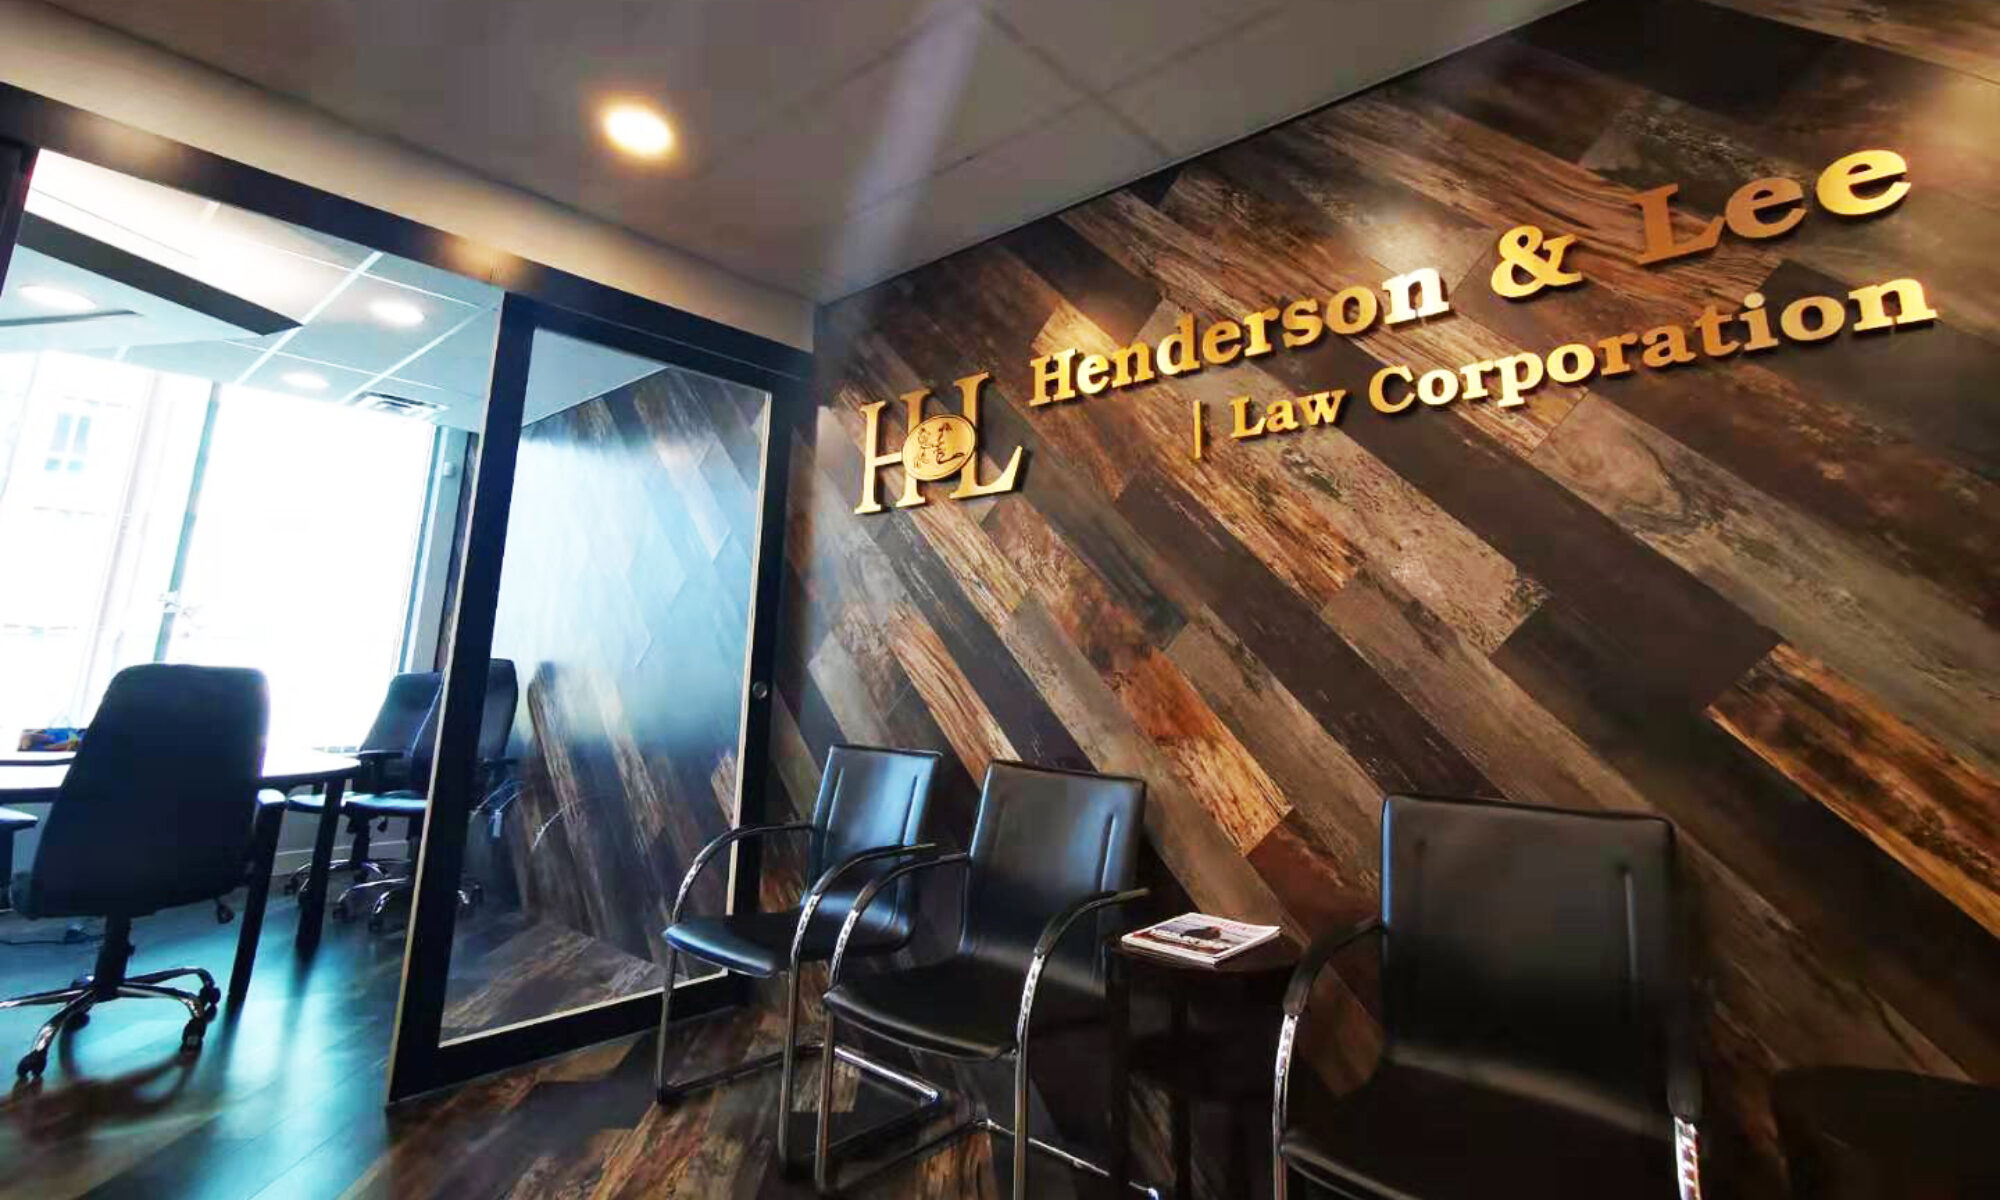 Henderson & Lee Law Corporation